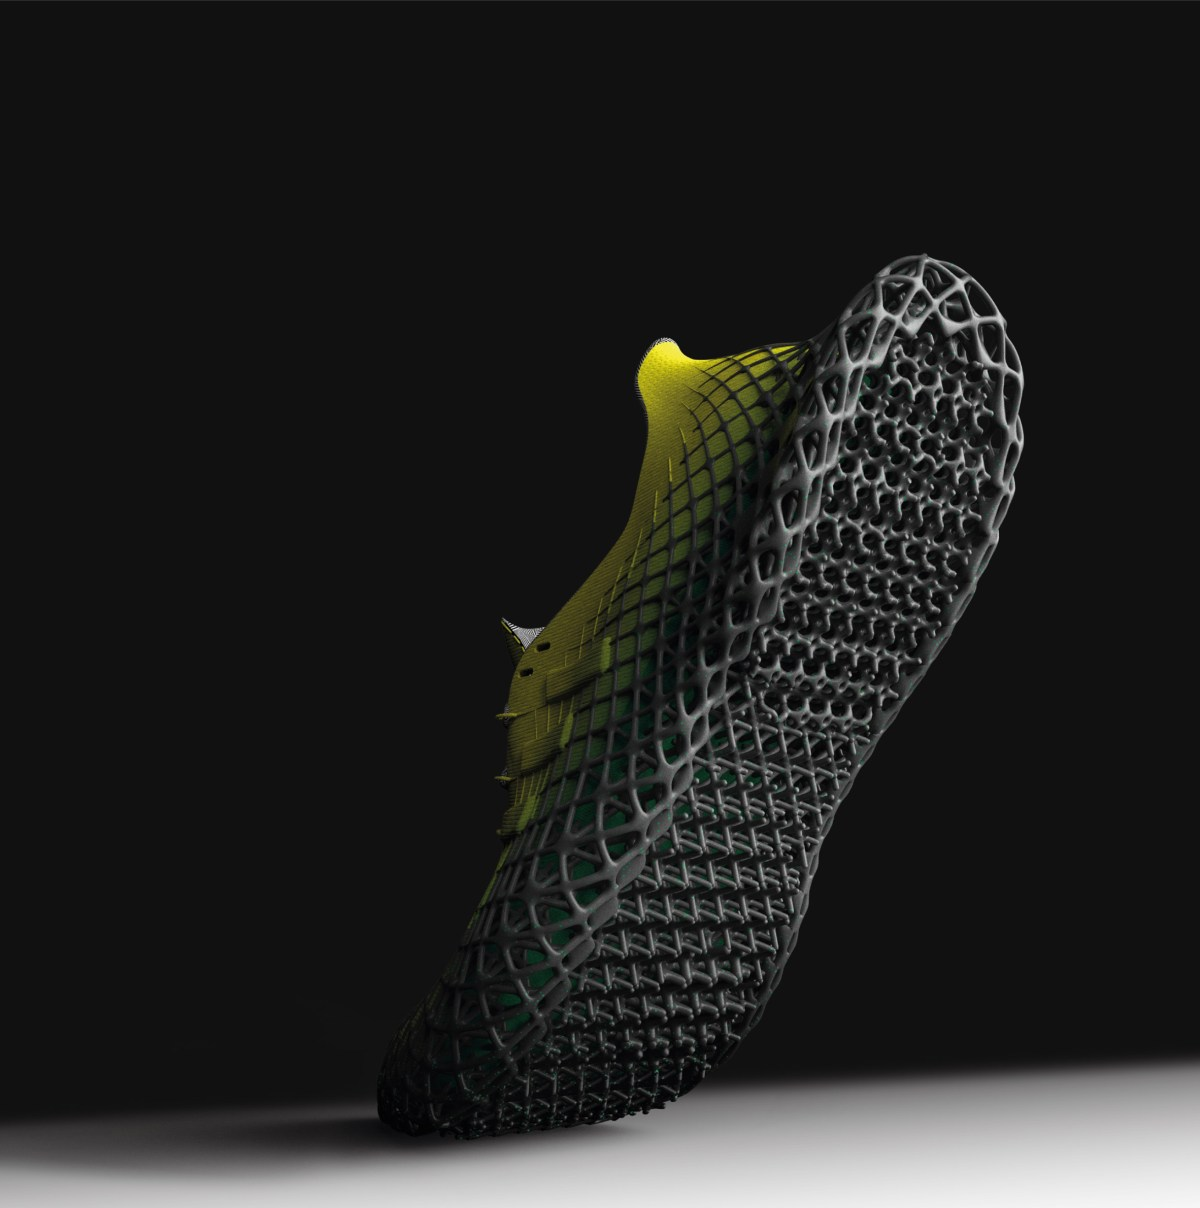 grit-training-shoes-aarish-netarwala-design_dezeen_2364_col_3